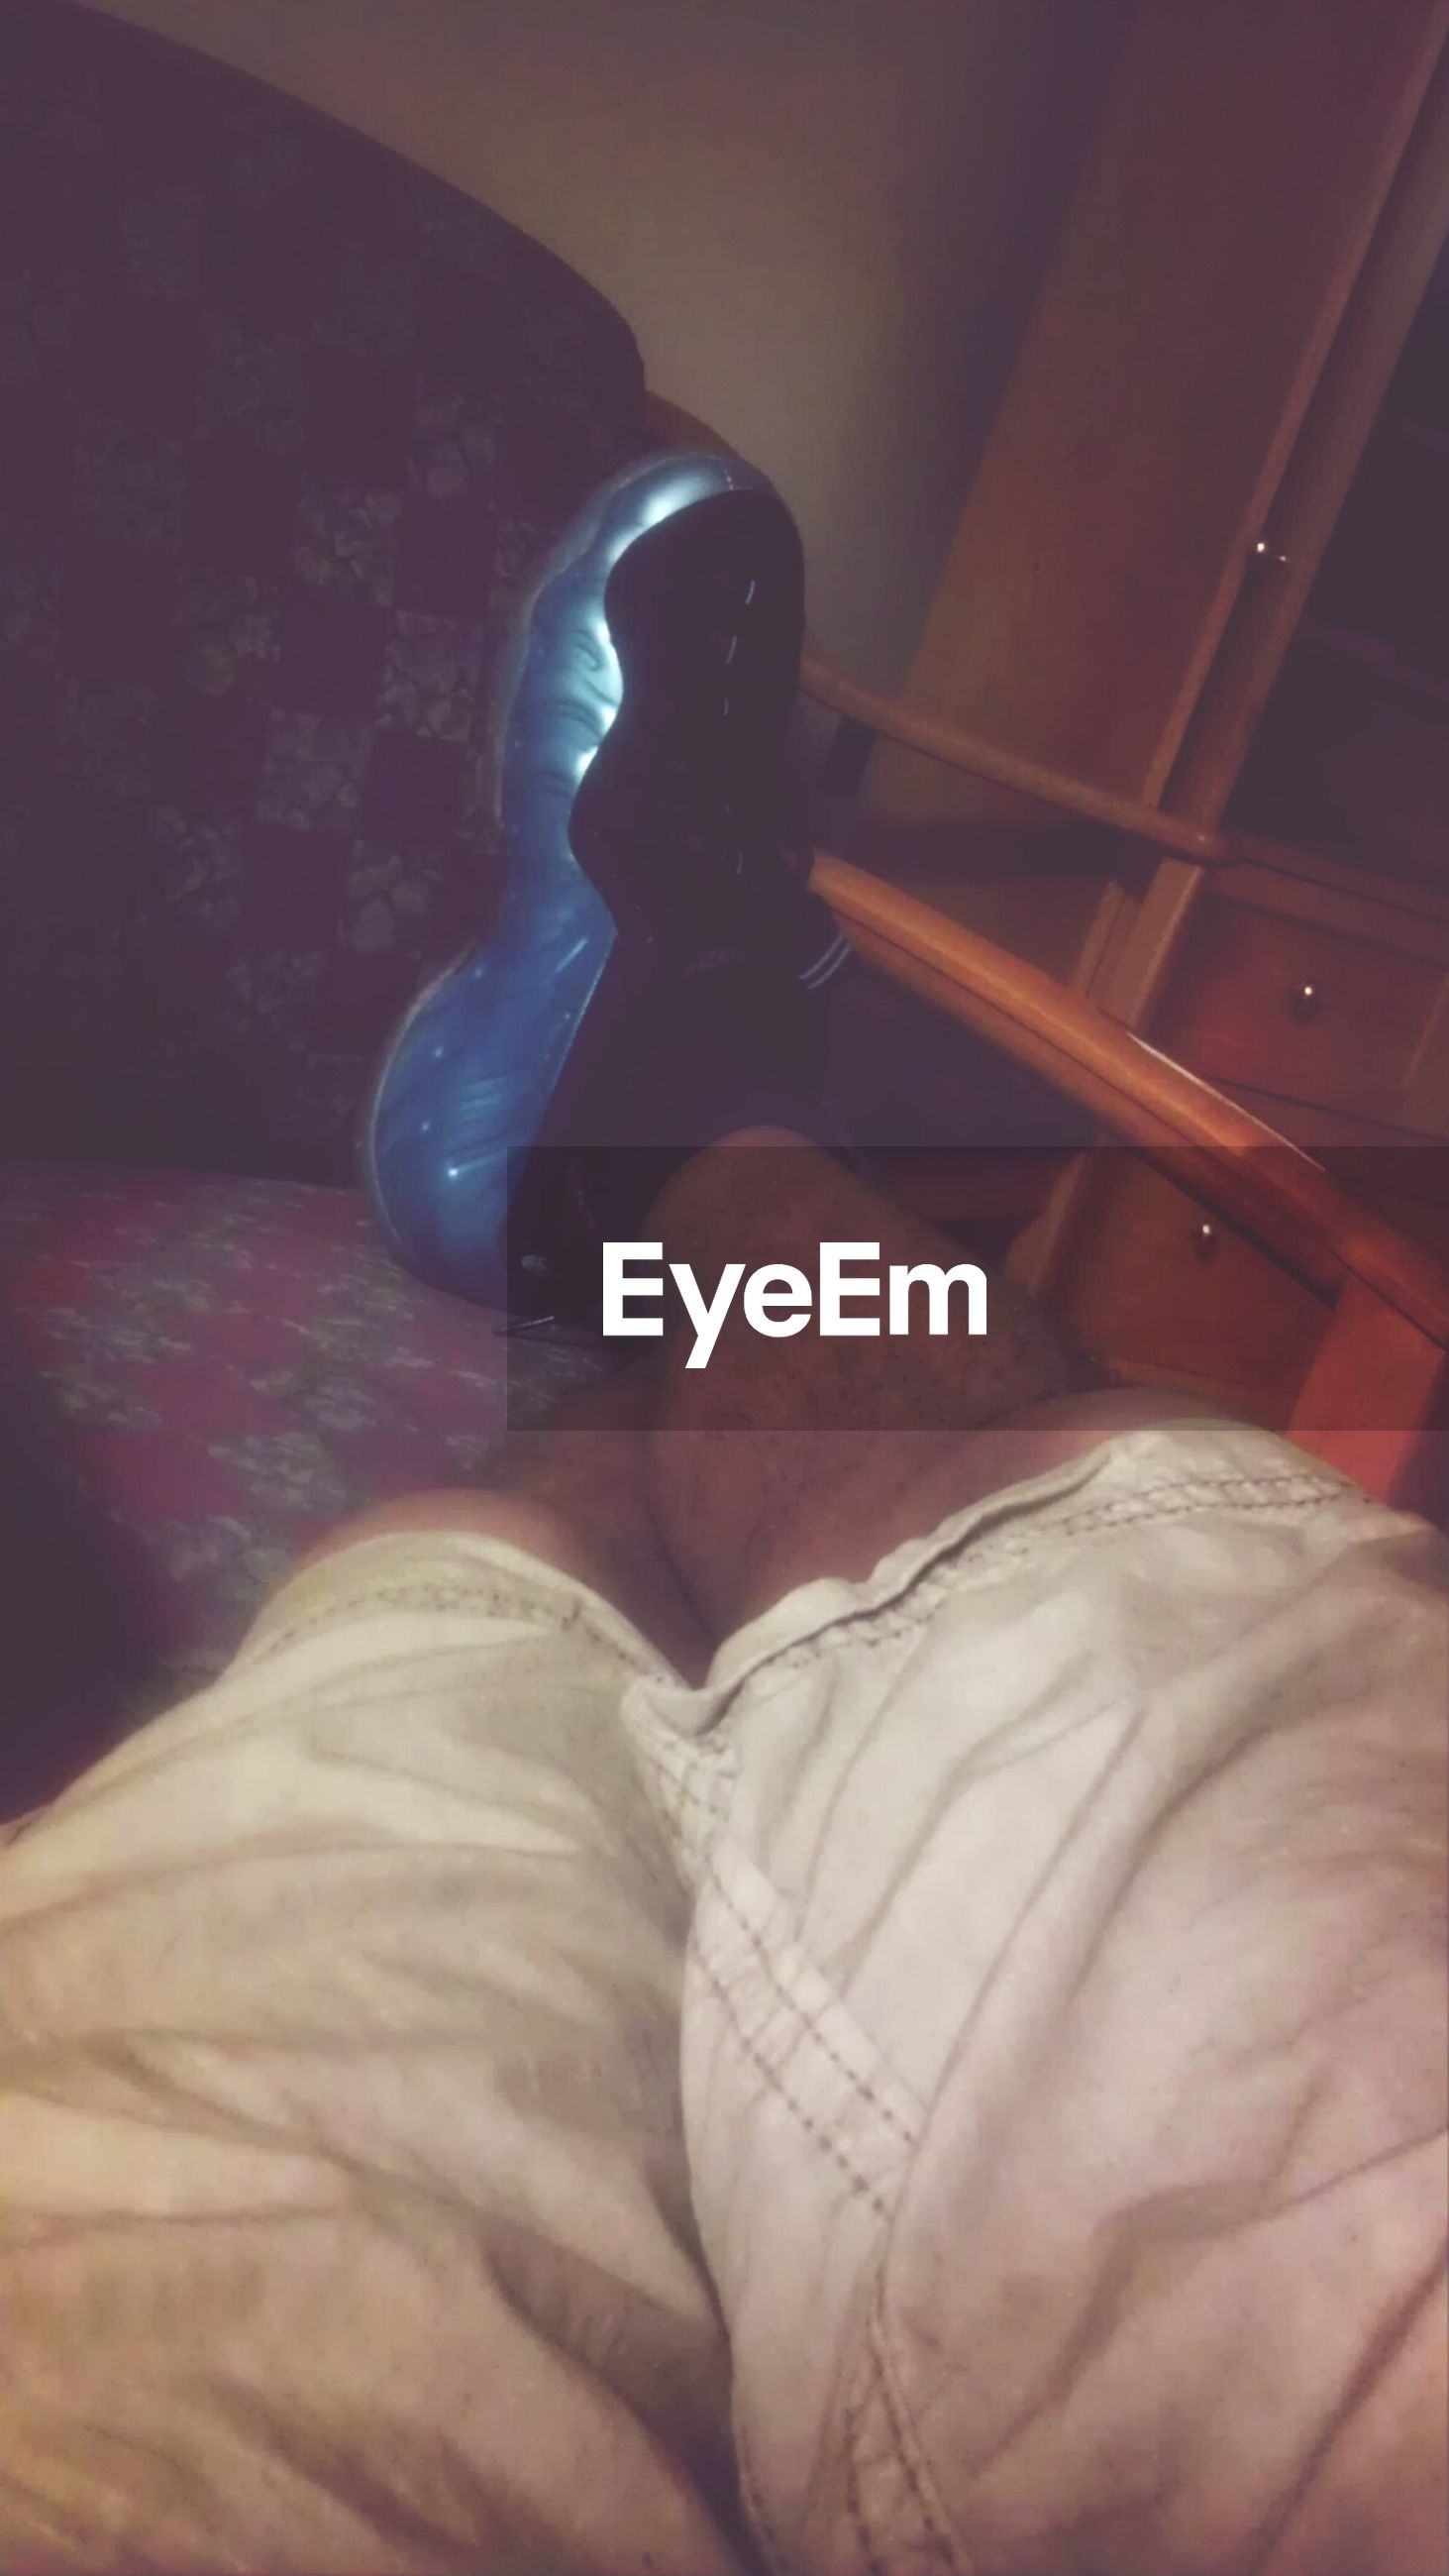 indoors, home interior, high angle view, low section, relaxation, sitting, shoe, person, lifestyles, close-up, part of, men, bed, footwear, personal perspective, domestic room, comfortable